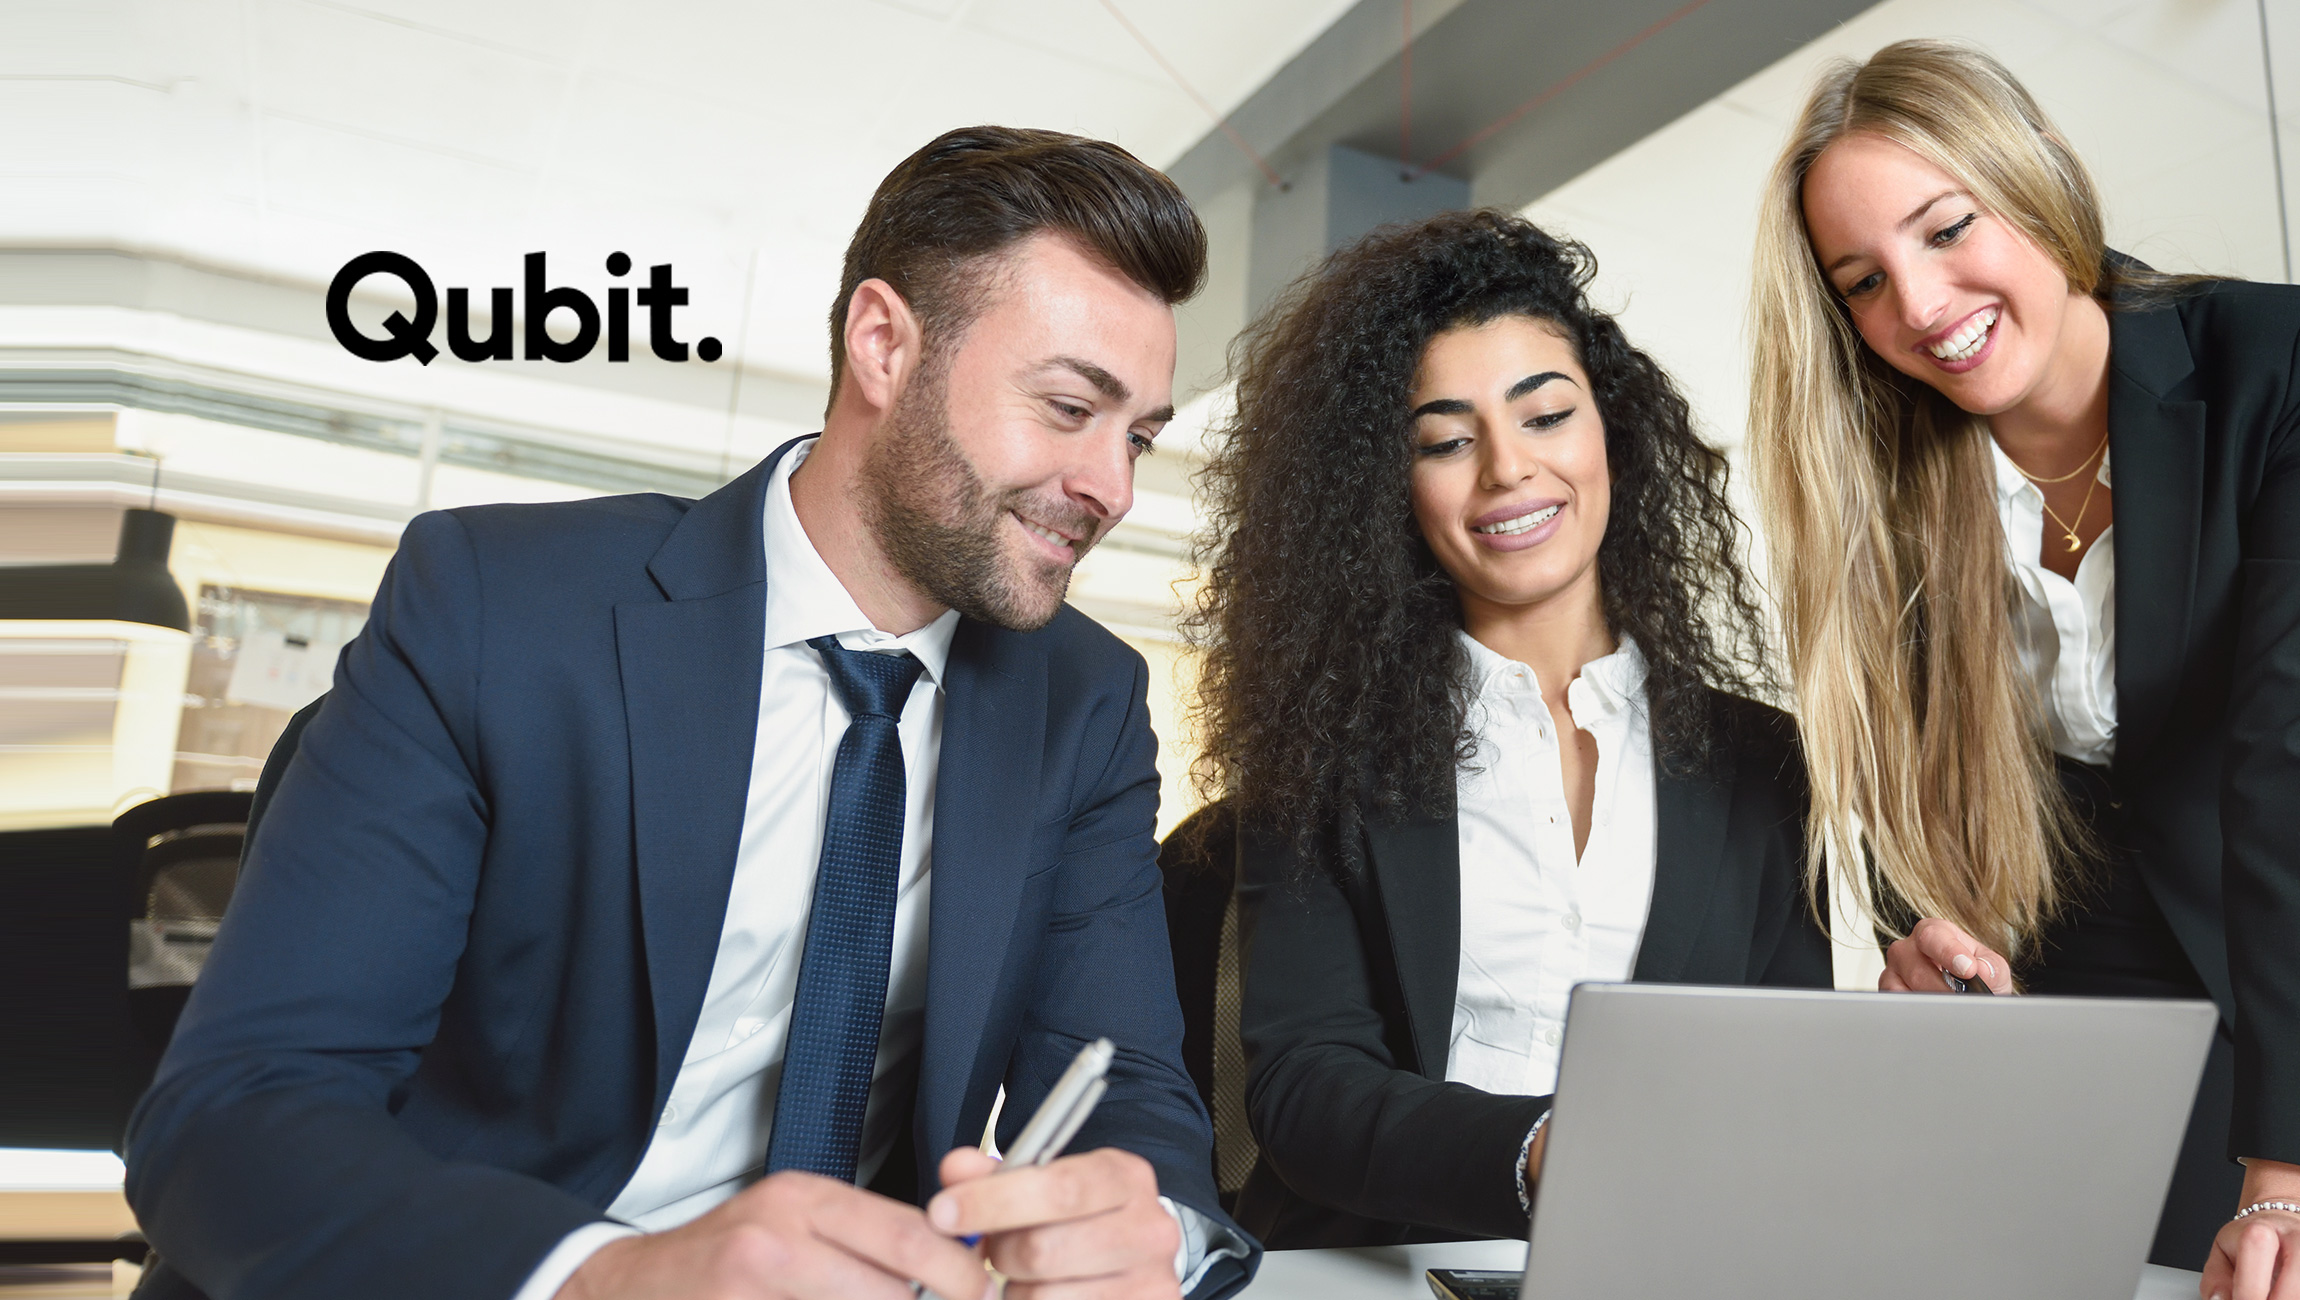 Qubit Announces New Product Portfolio Designed to Accelerate Personalization for Retail Brands